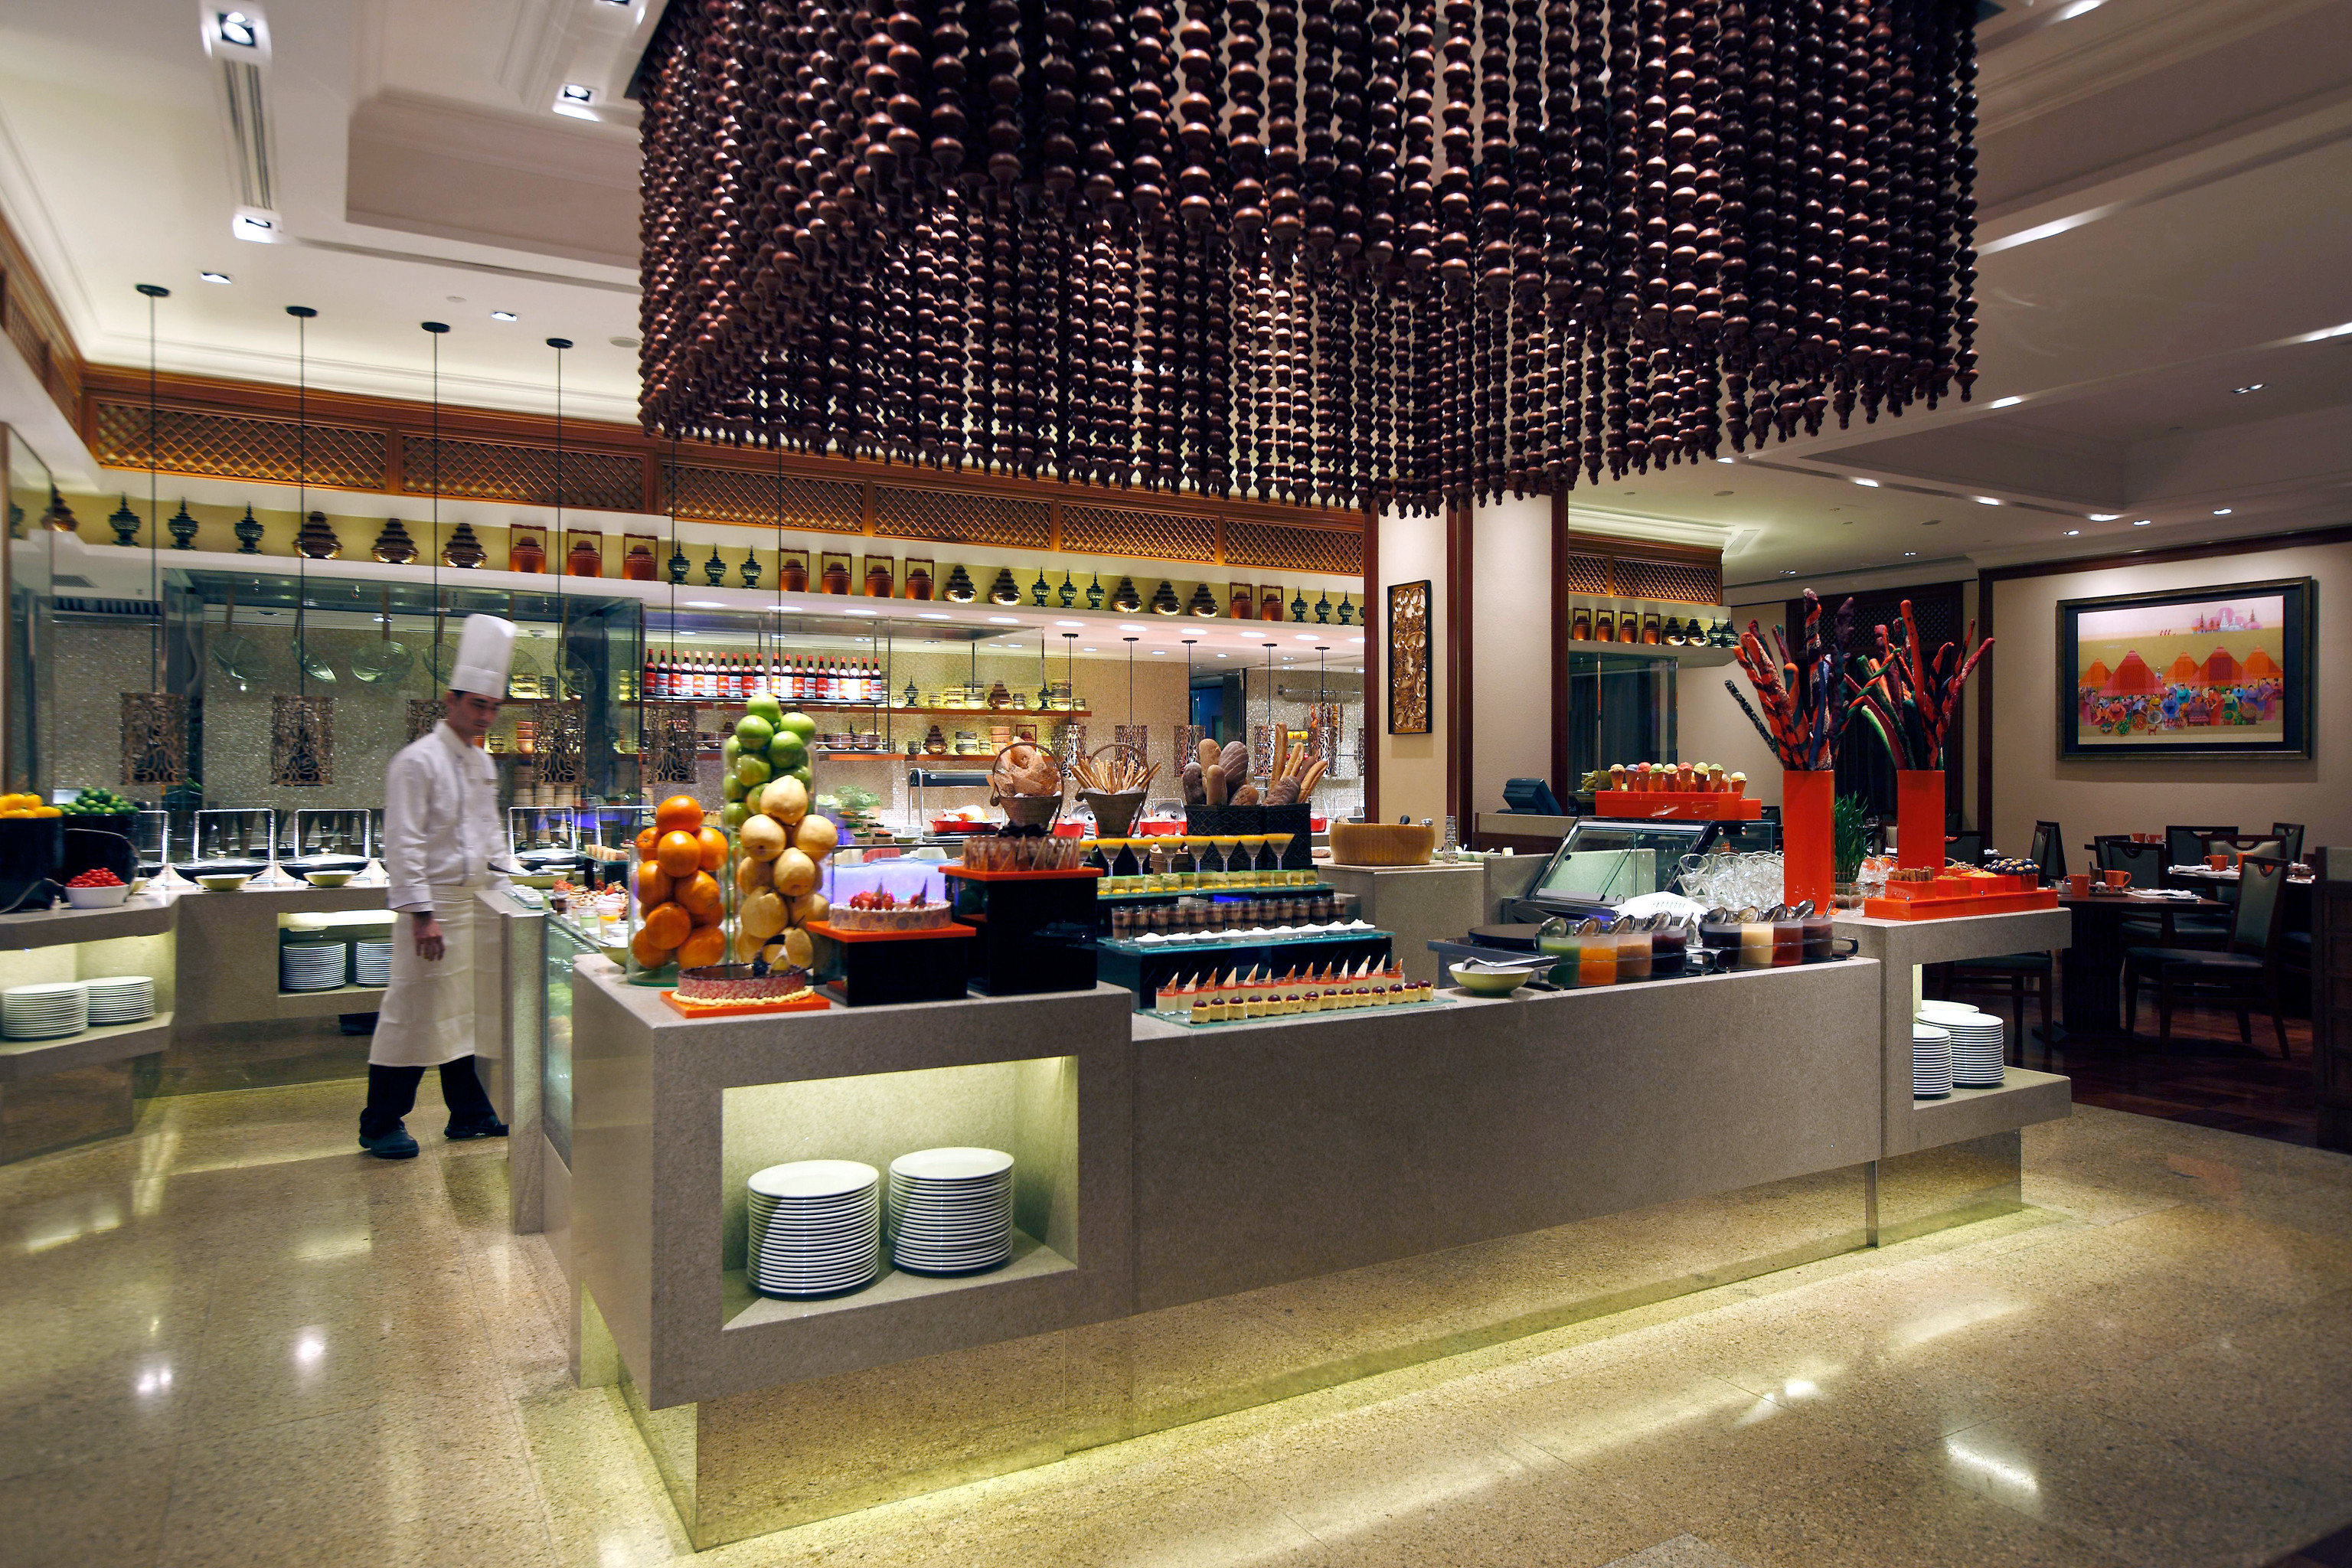 building retail shopping mall Lobby food court restaurant